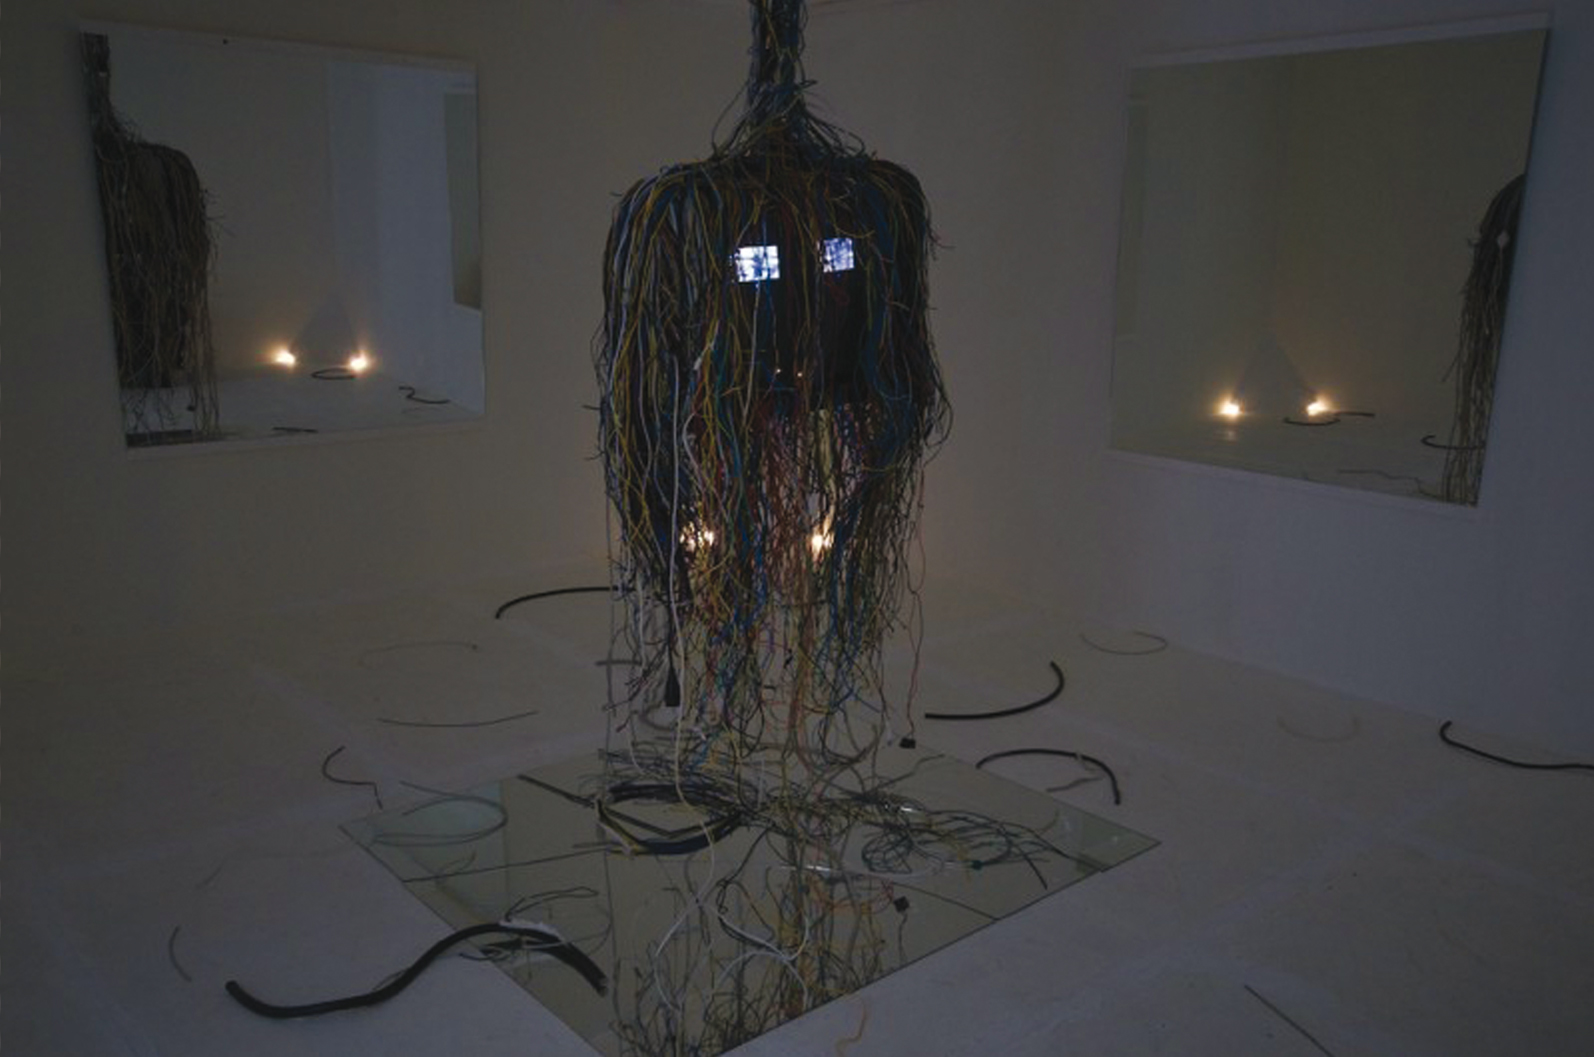 A tube television hangs in the middle of the gallery room. Numerous cables hanging down from the TV almost covering it totally. Two small screens are visible on the front screen. Huge mirrors are placed on the floor and the walls.